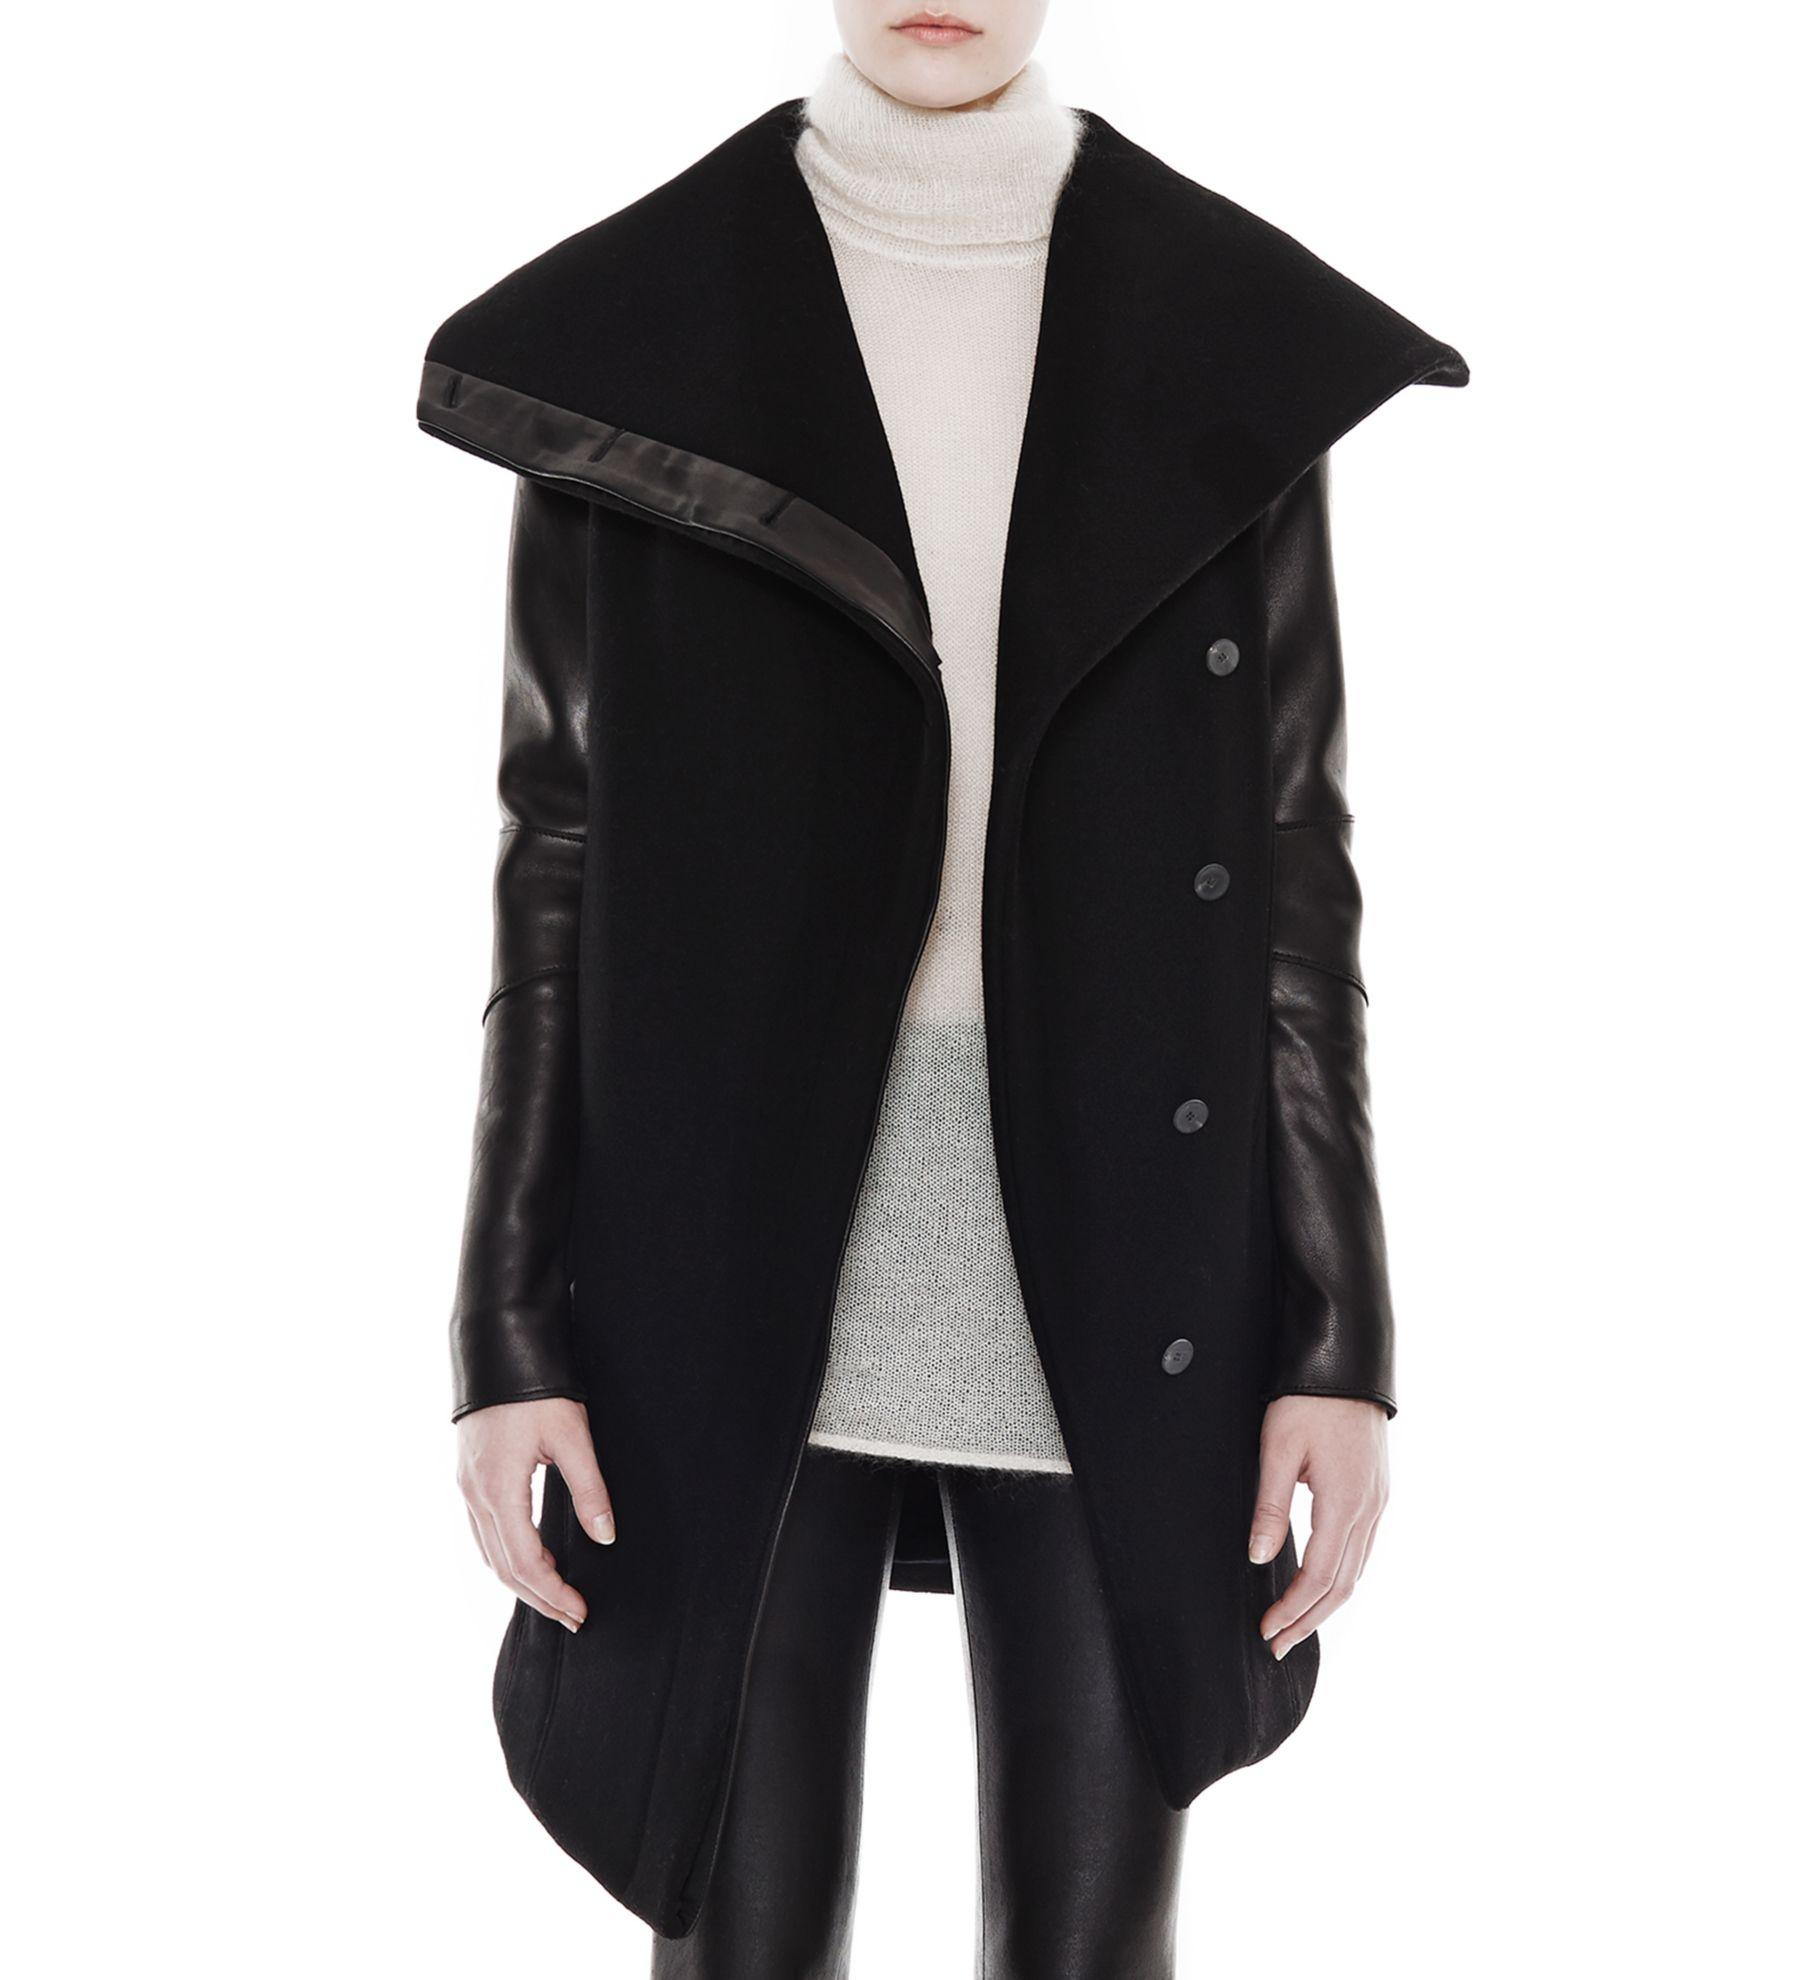 Shop Free Shipping For Cheap Helmut Lang Leather-Trimmed Wool-Blend Jacket 5fAi9s